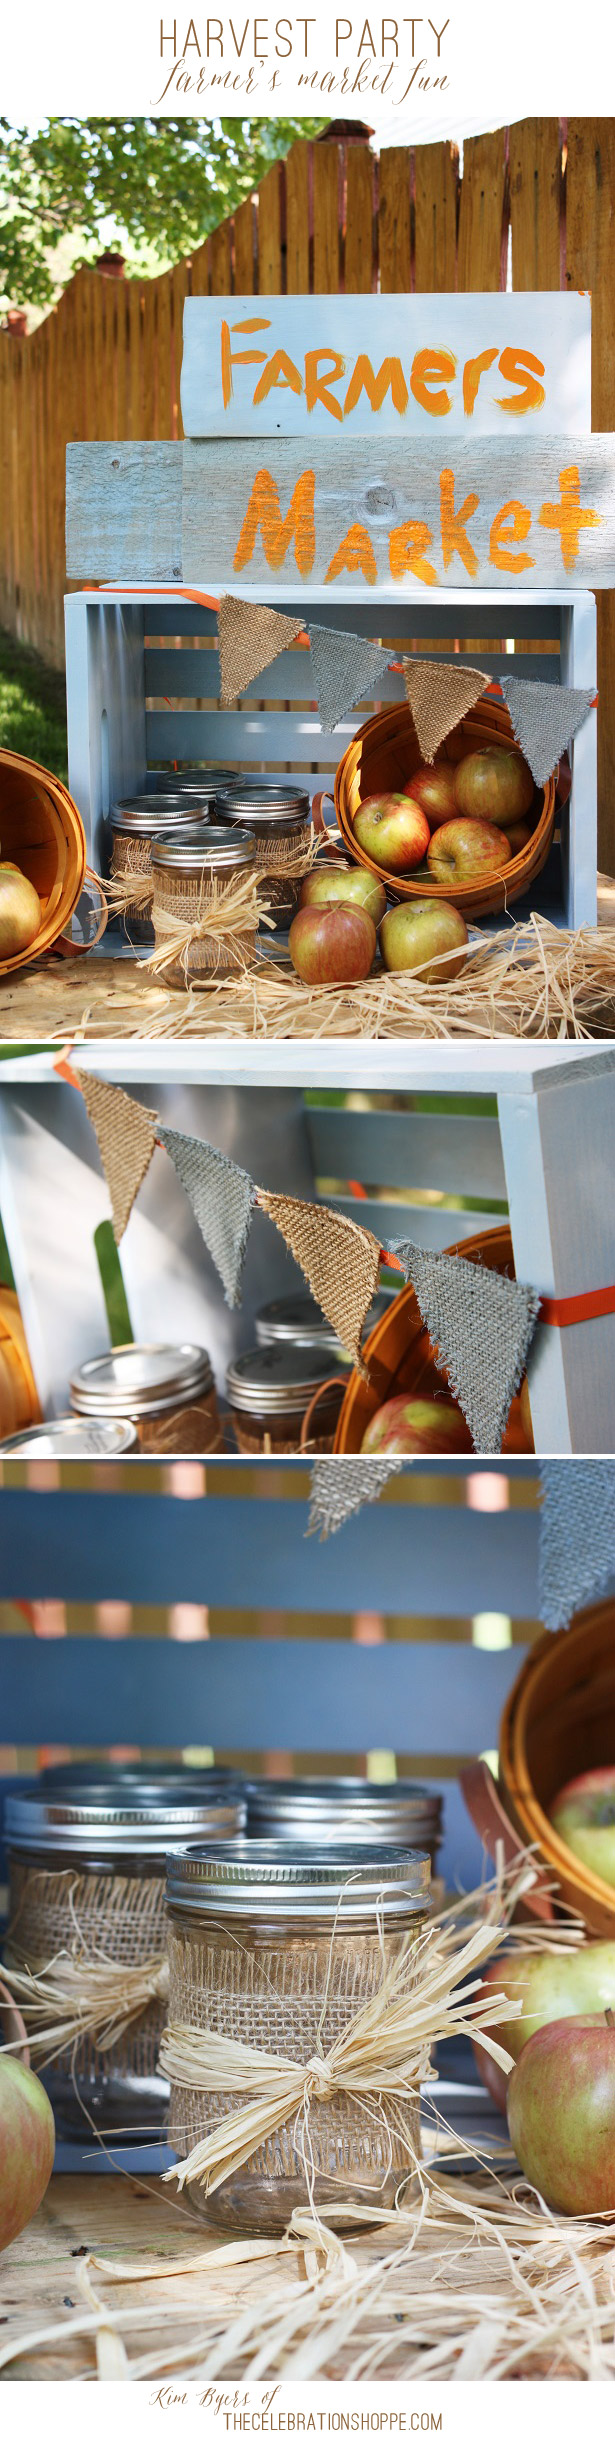 Farmers market for harvest party kim byers